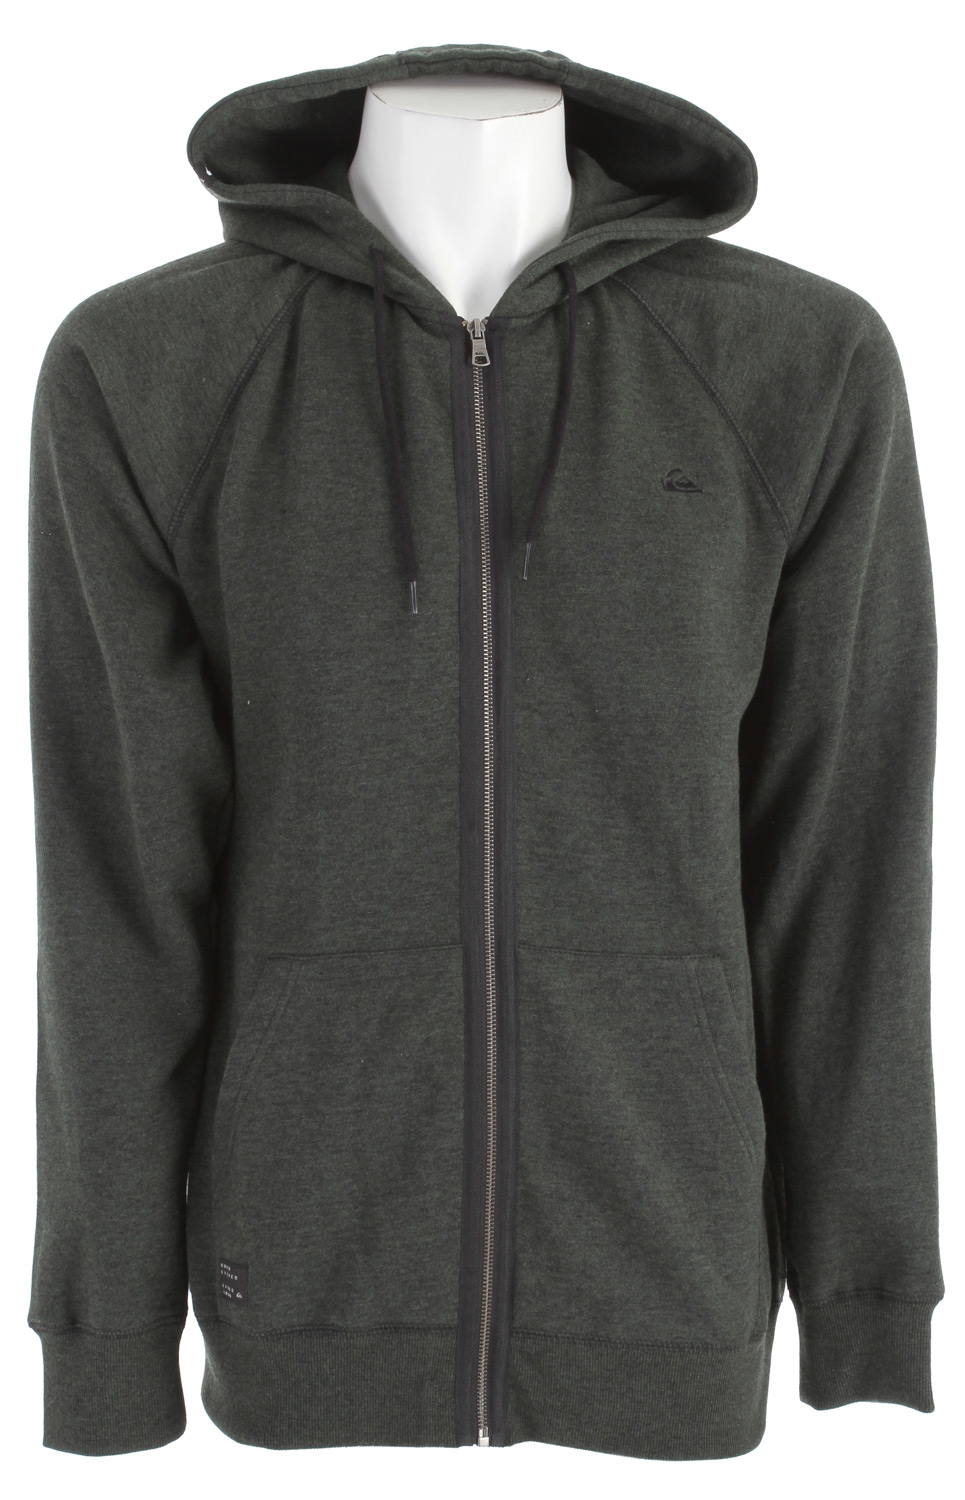 Surf Key Features of the Quiksilver Taser Hoodie: 53% cotton/47% polyester 280 gsm duo dye burnout full zip fleece with self hoodliner Raglan sleeve with coverstitch Mountain wave badge at left chest Contrast drawcords Exterior woven labels, ribbed cuffs/hem Garment wash with softener - $31.95